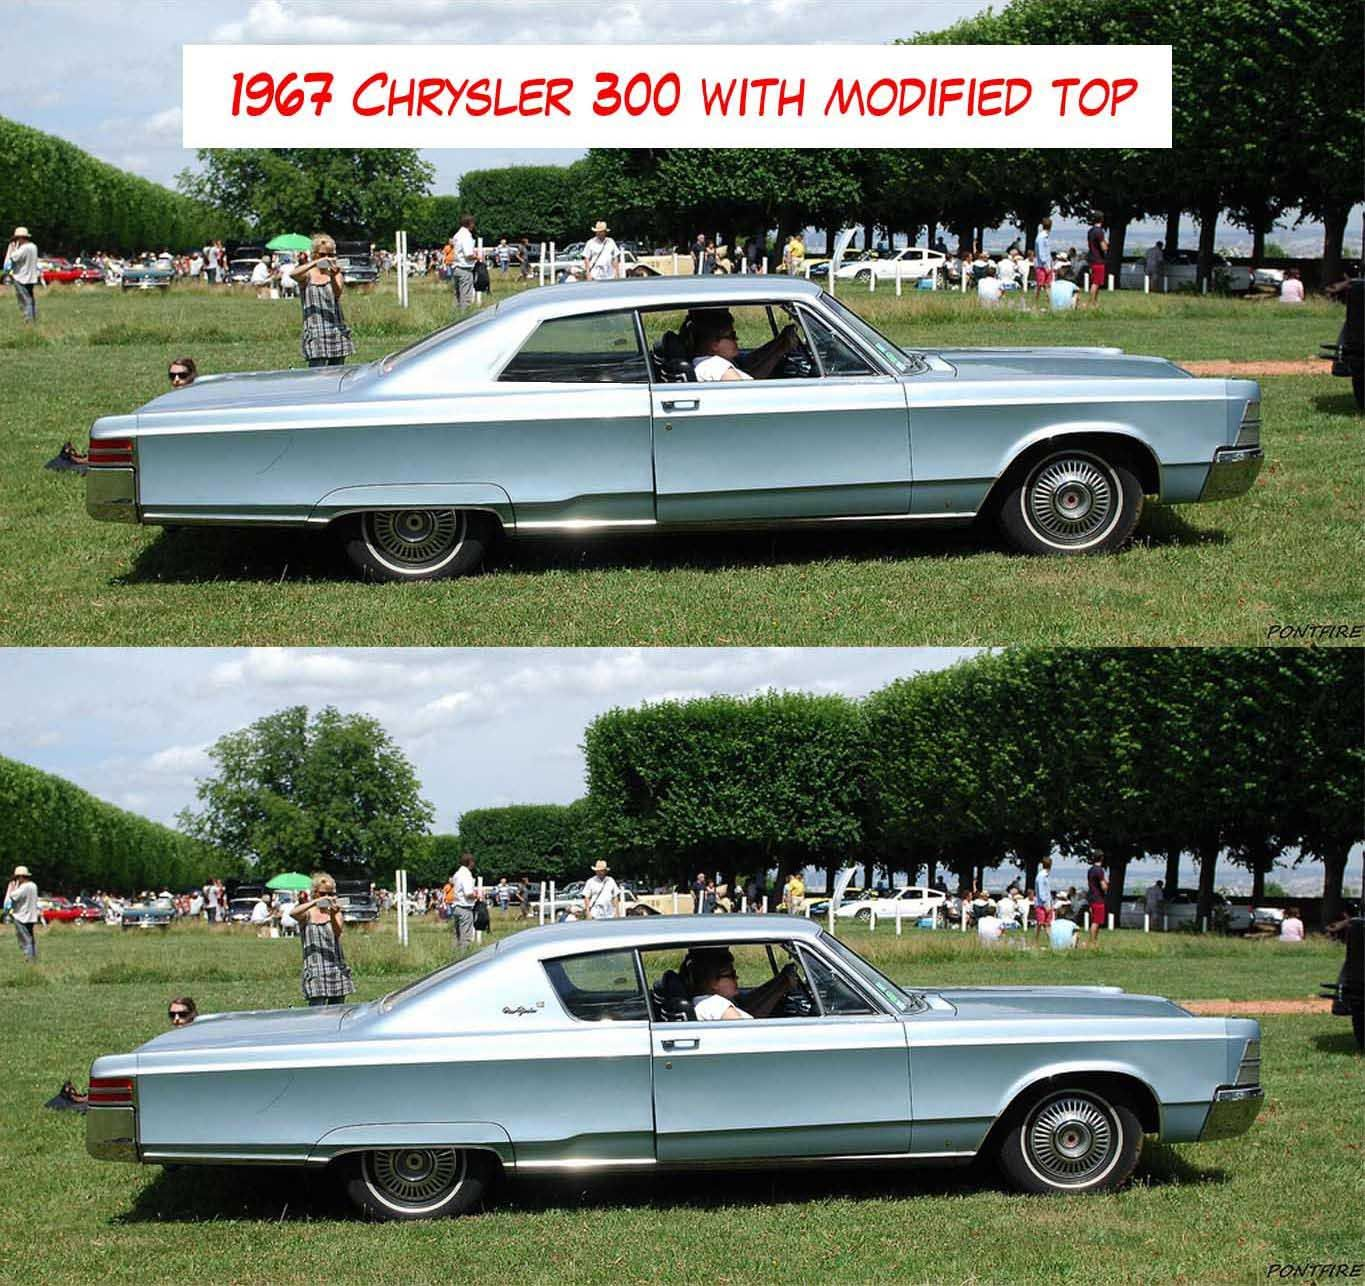 1967 Chrysler 300 With Modified Top. IMO, Looks Better